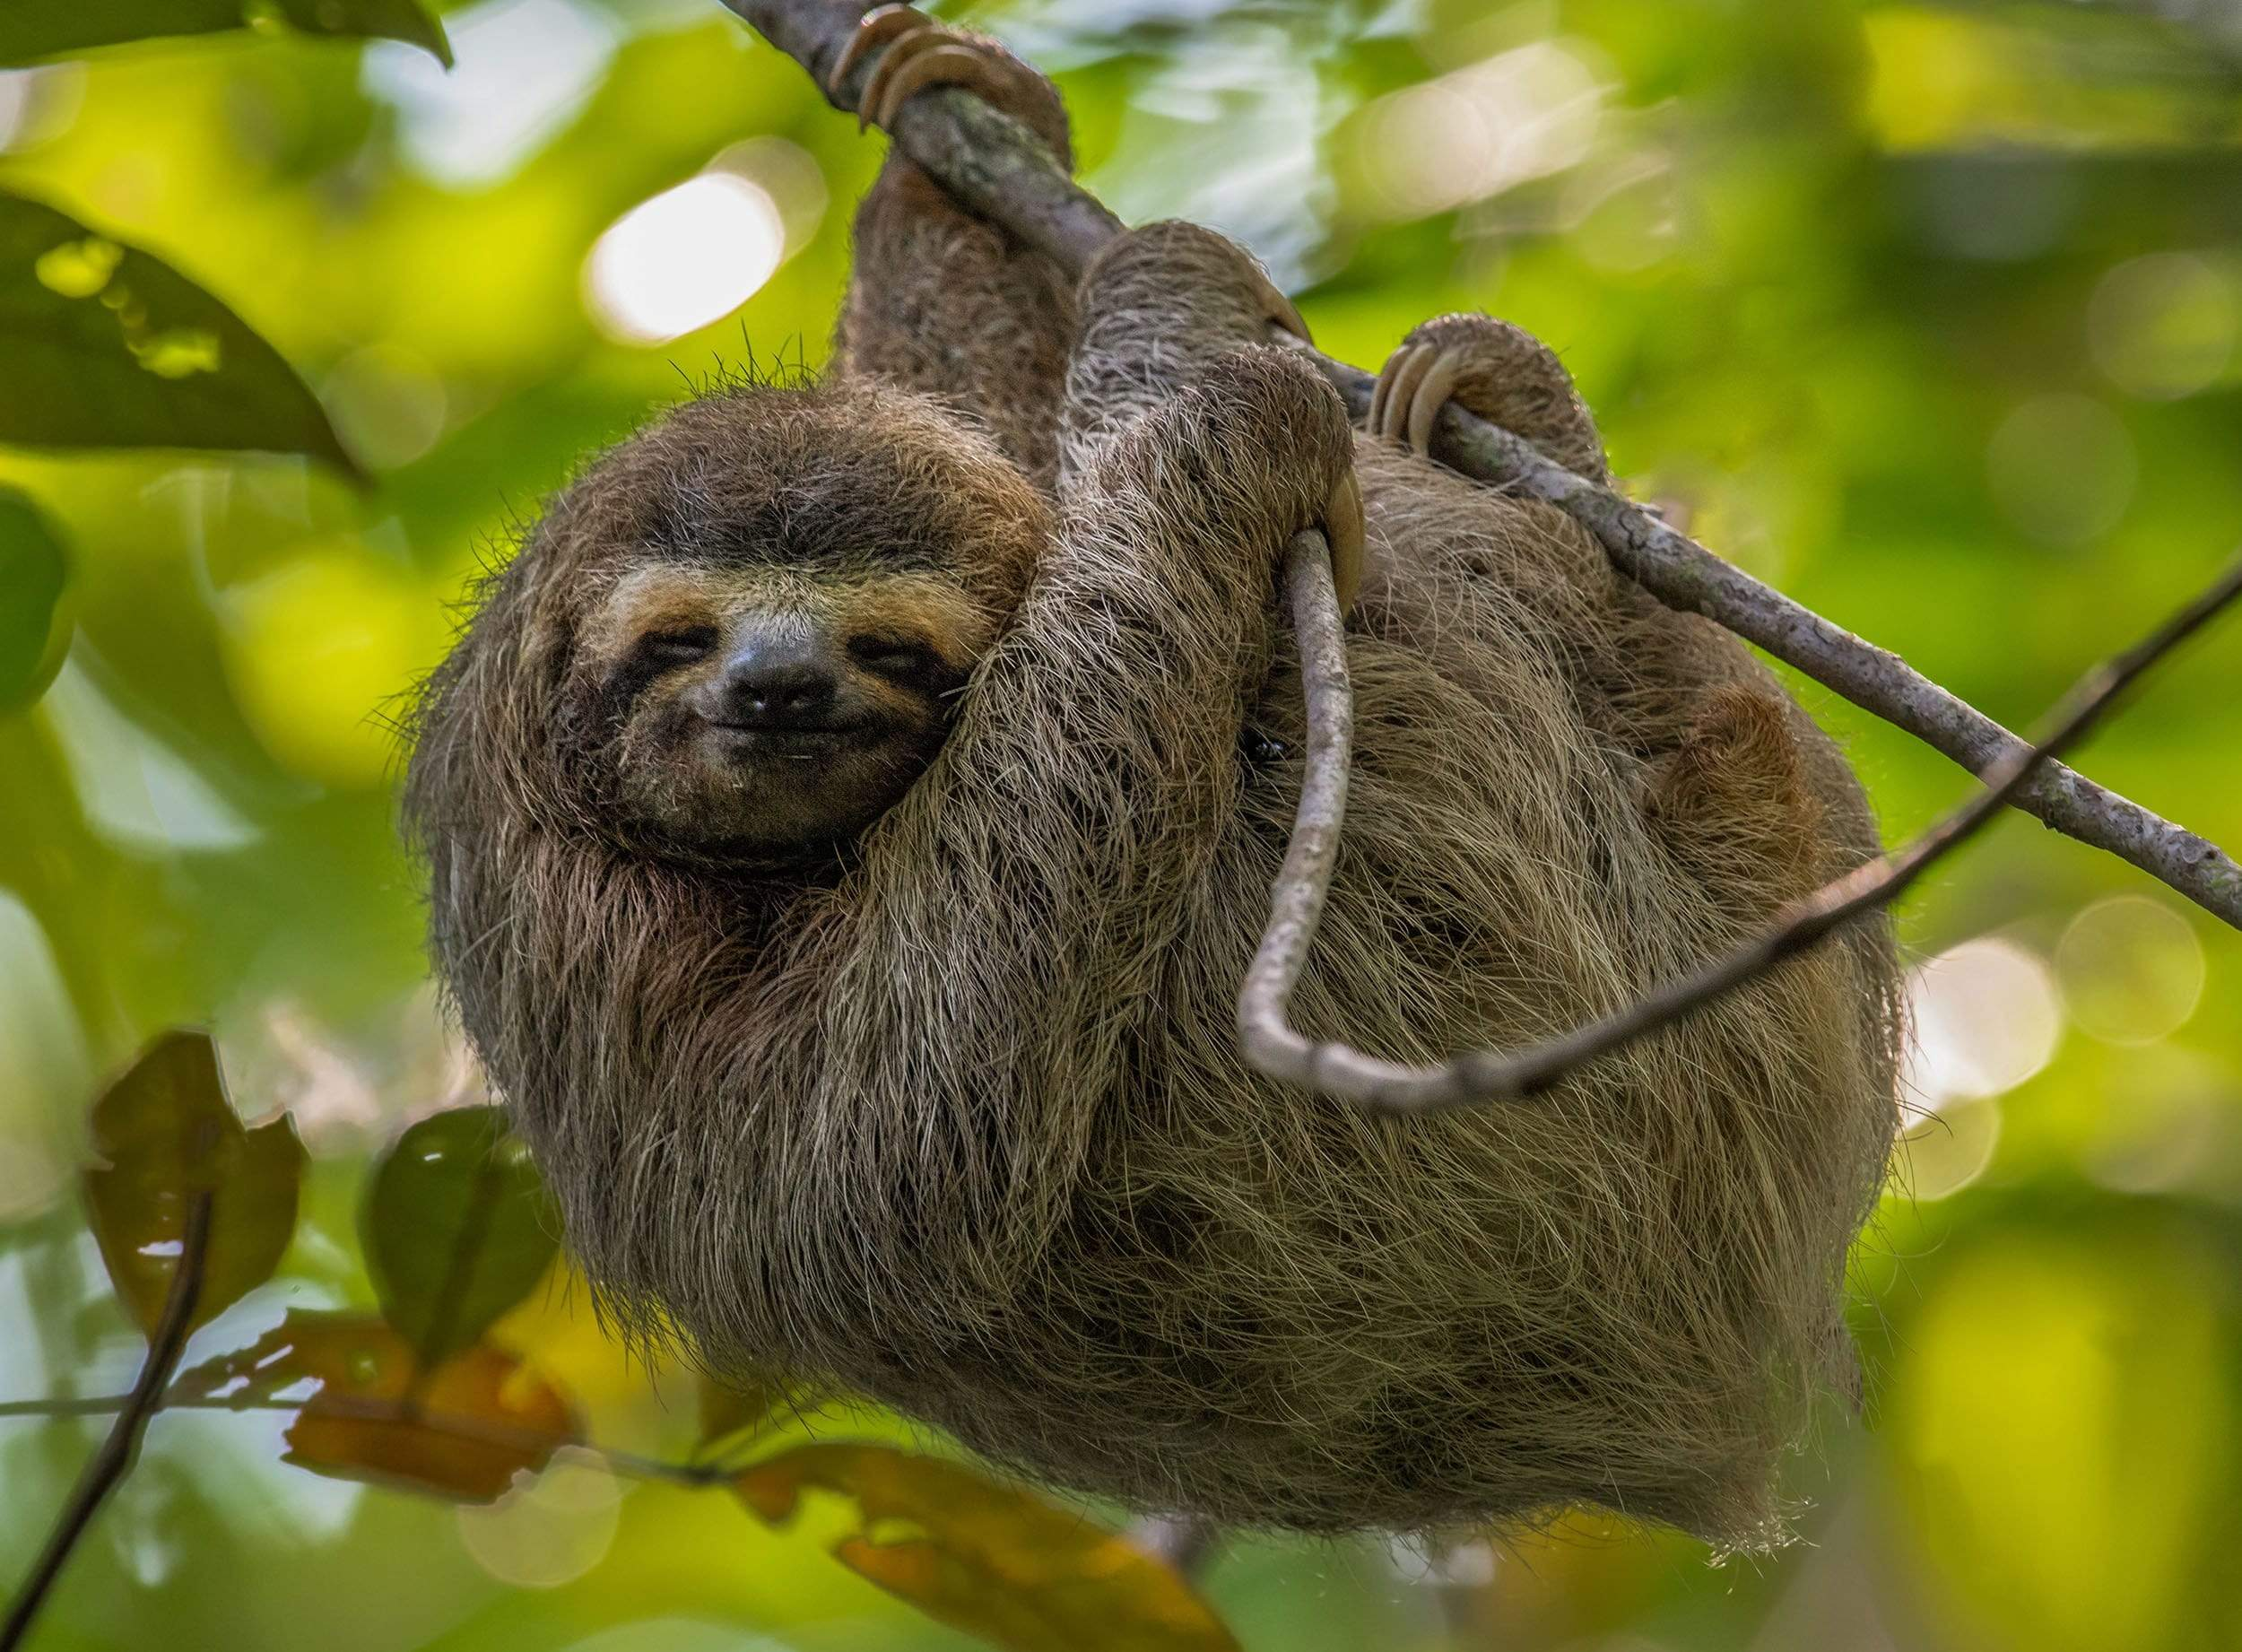 Sloth hanging in tree with green background